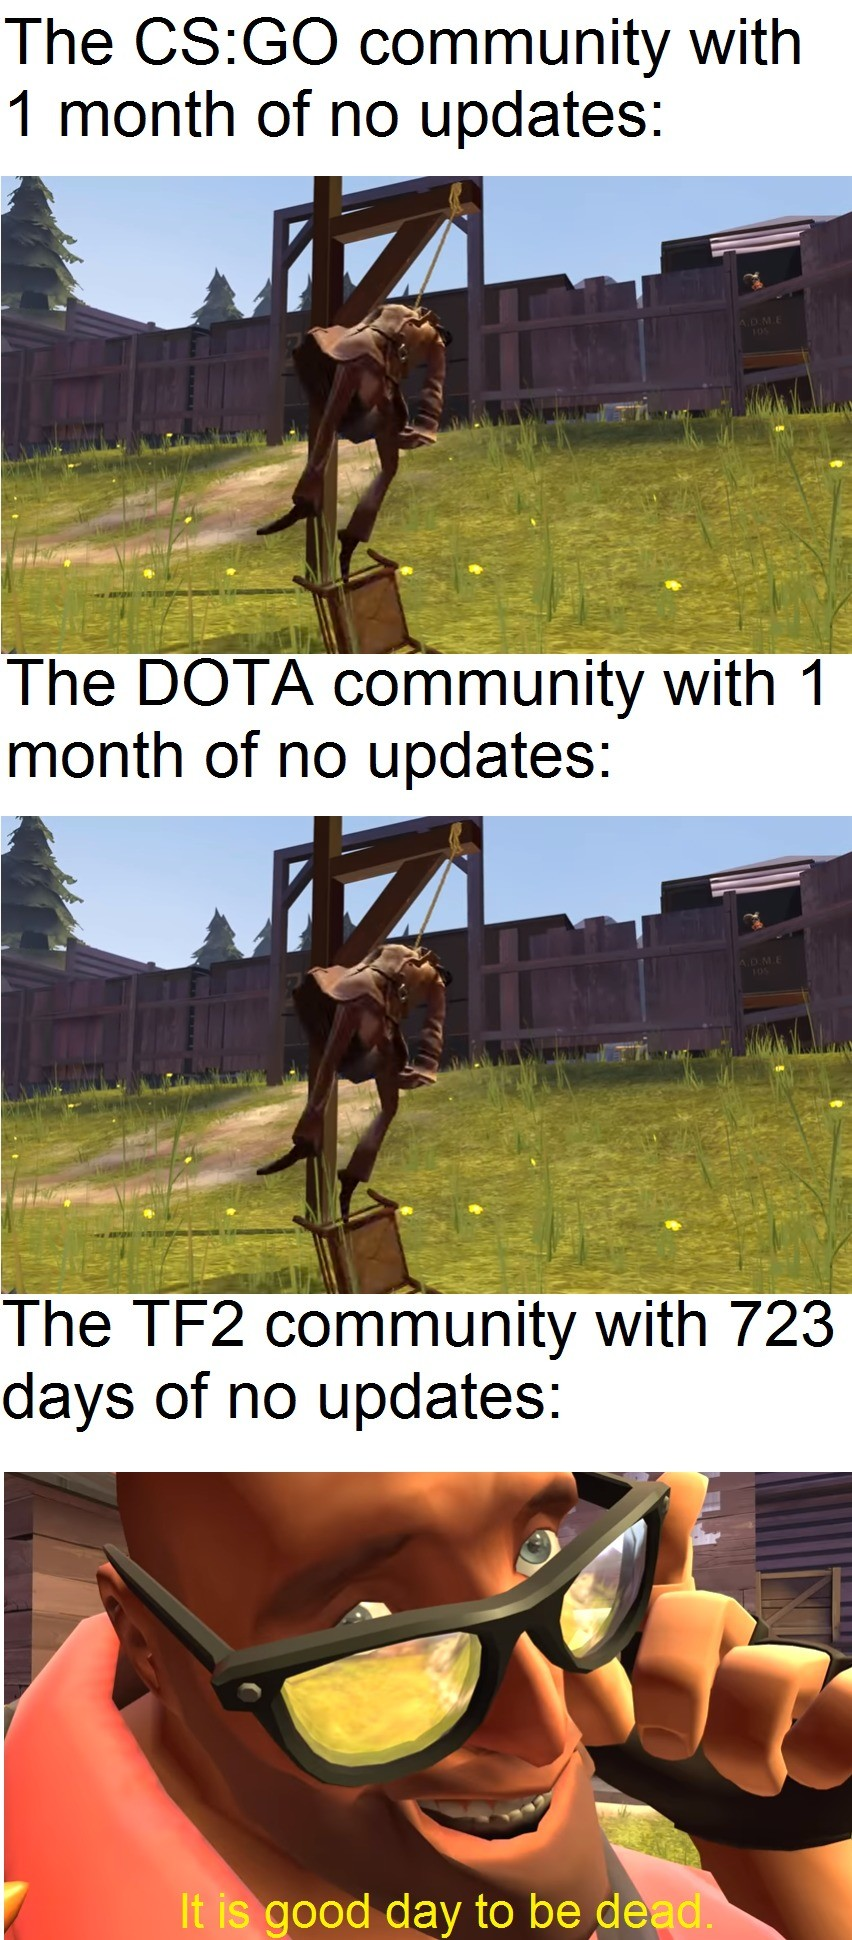 2517. .. tf2 is still the bomb tho. Comment edited at .